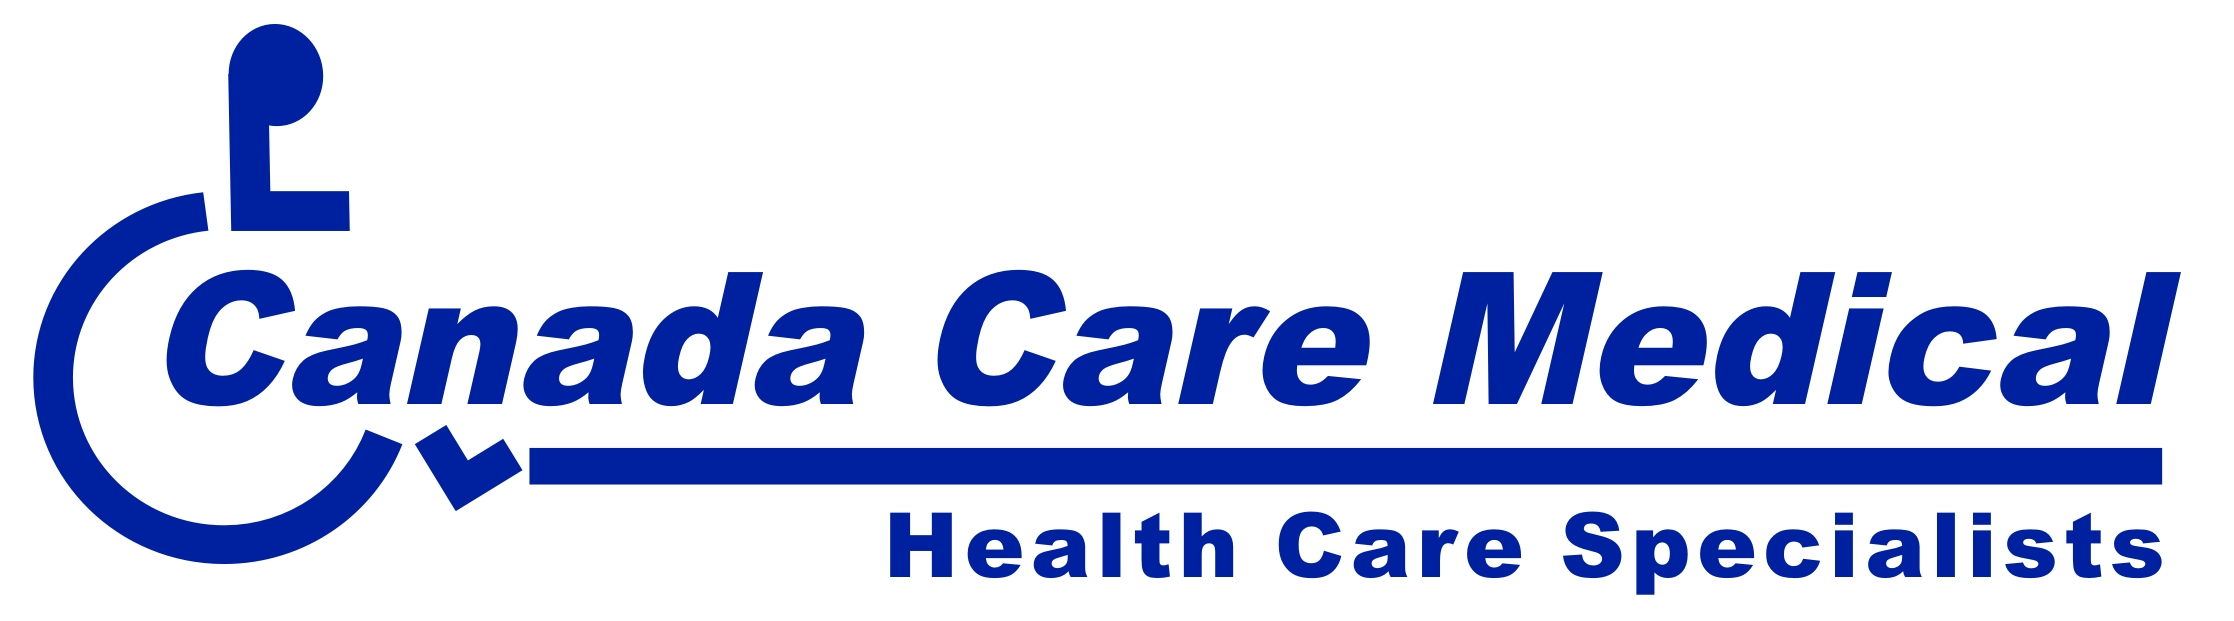 Canada Care Medical logo